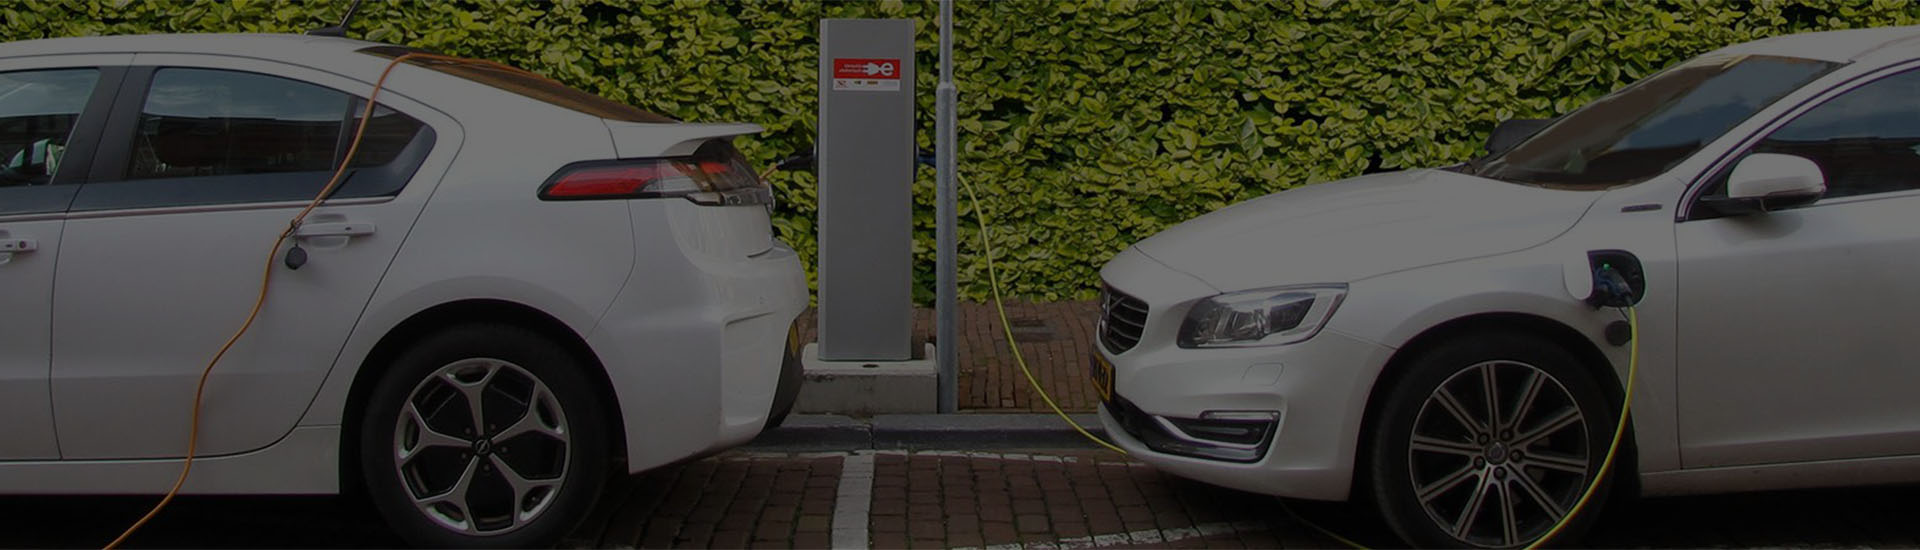 hybrid and electric car service